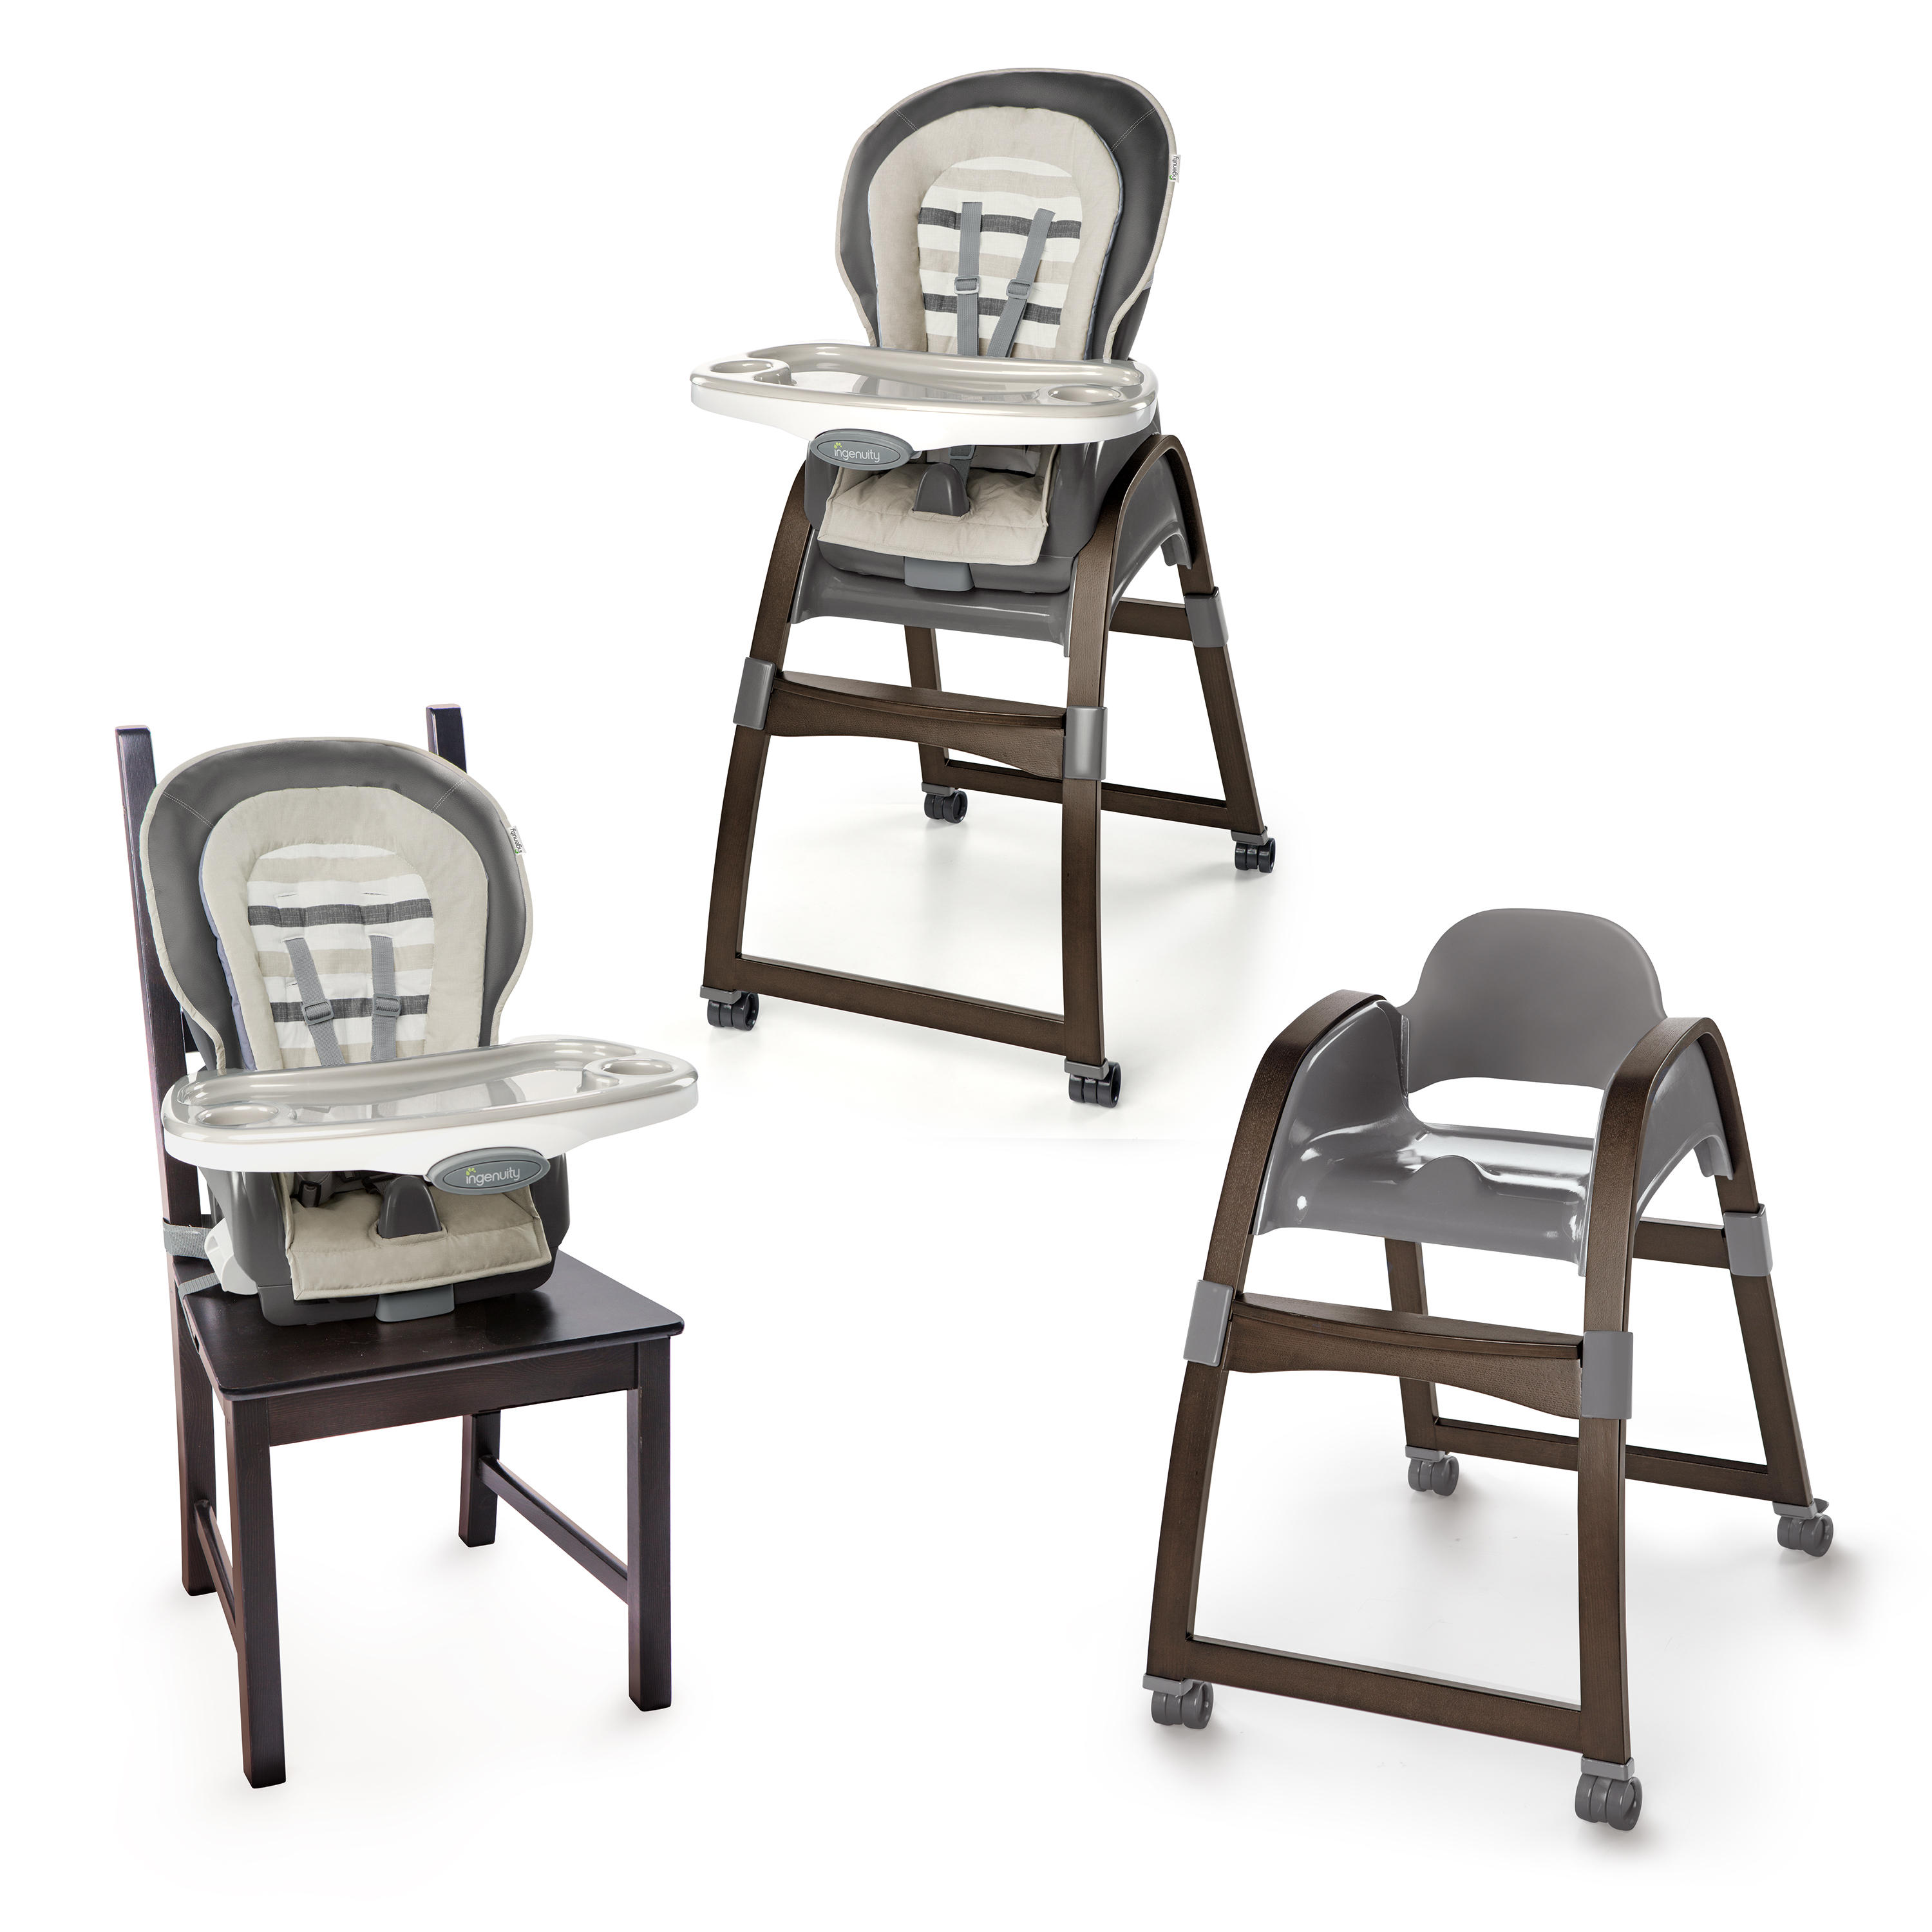 graco winnie the pooh high chair home depot plastic chairs trio 3 in 1 wood tristan